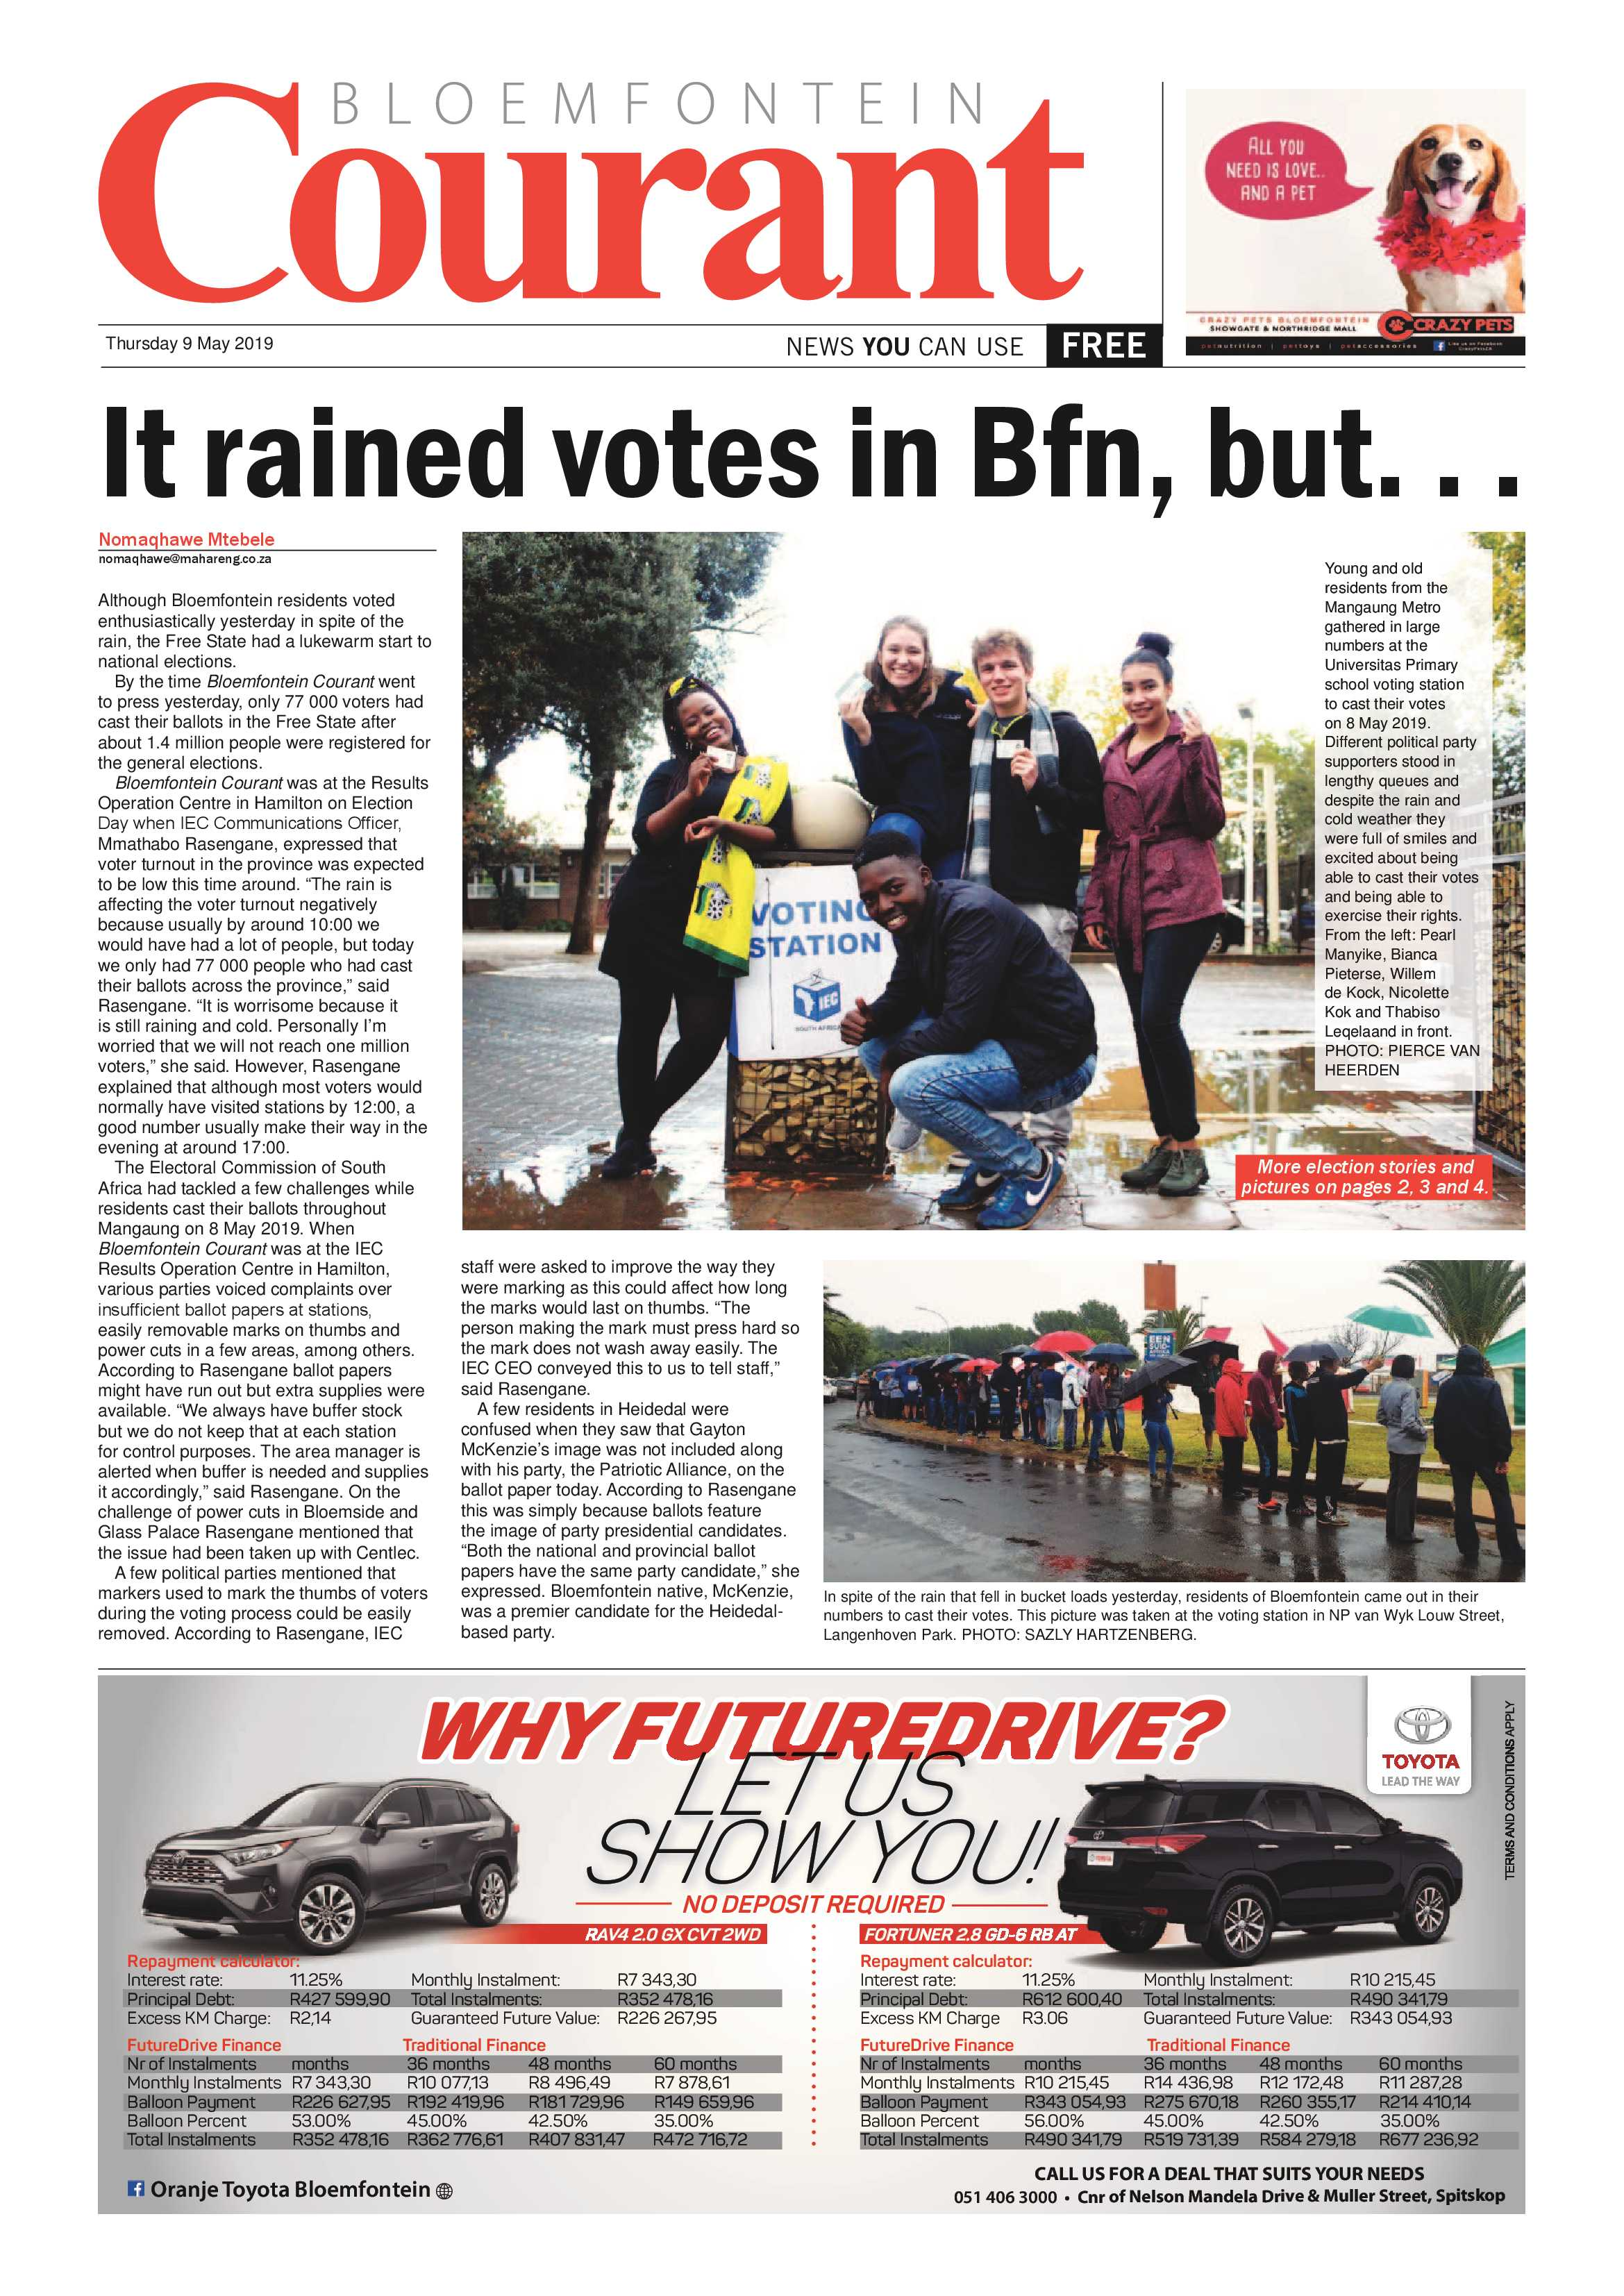 Courant 9 May 2019 - Bloemfontein Courant